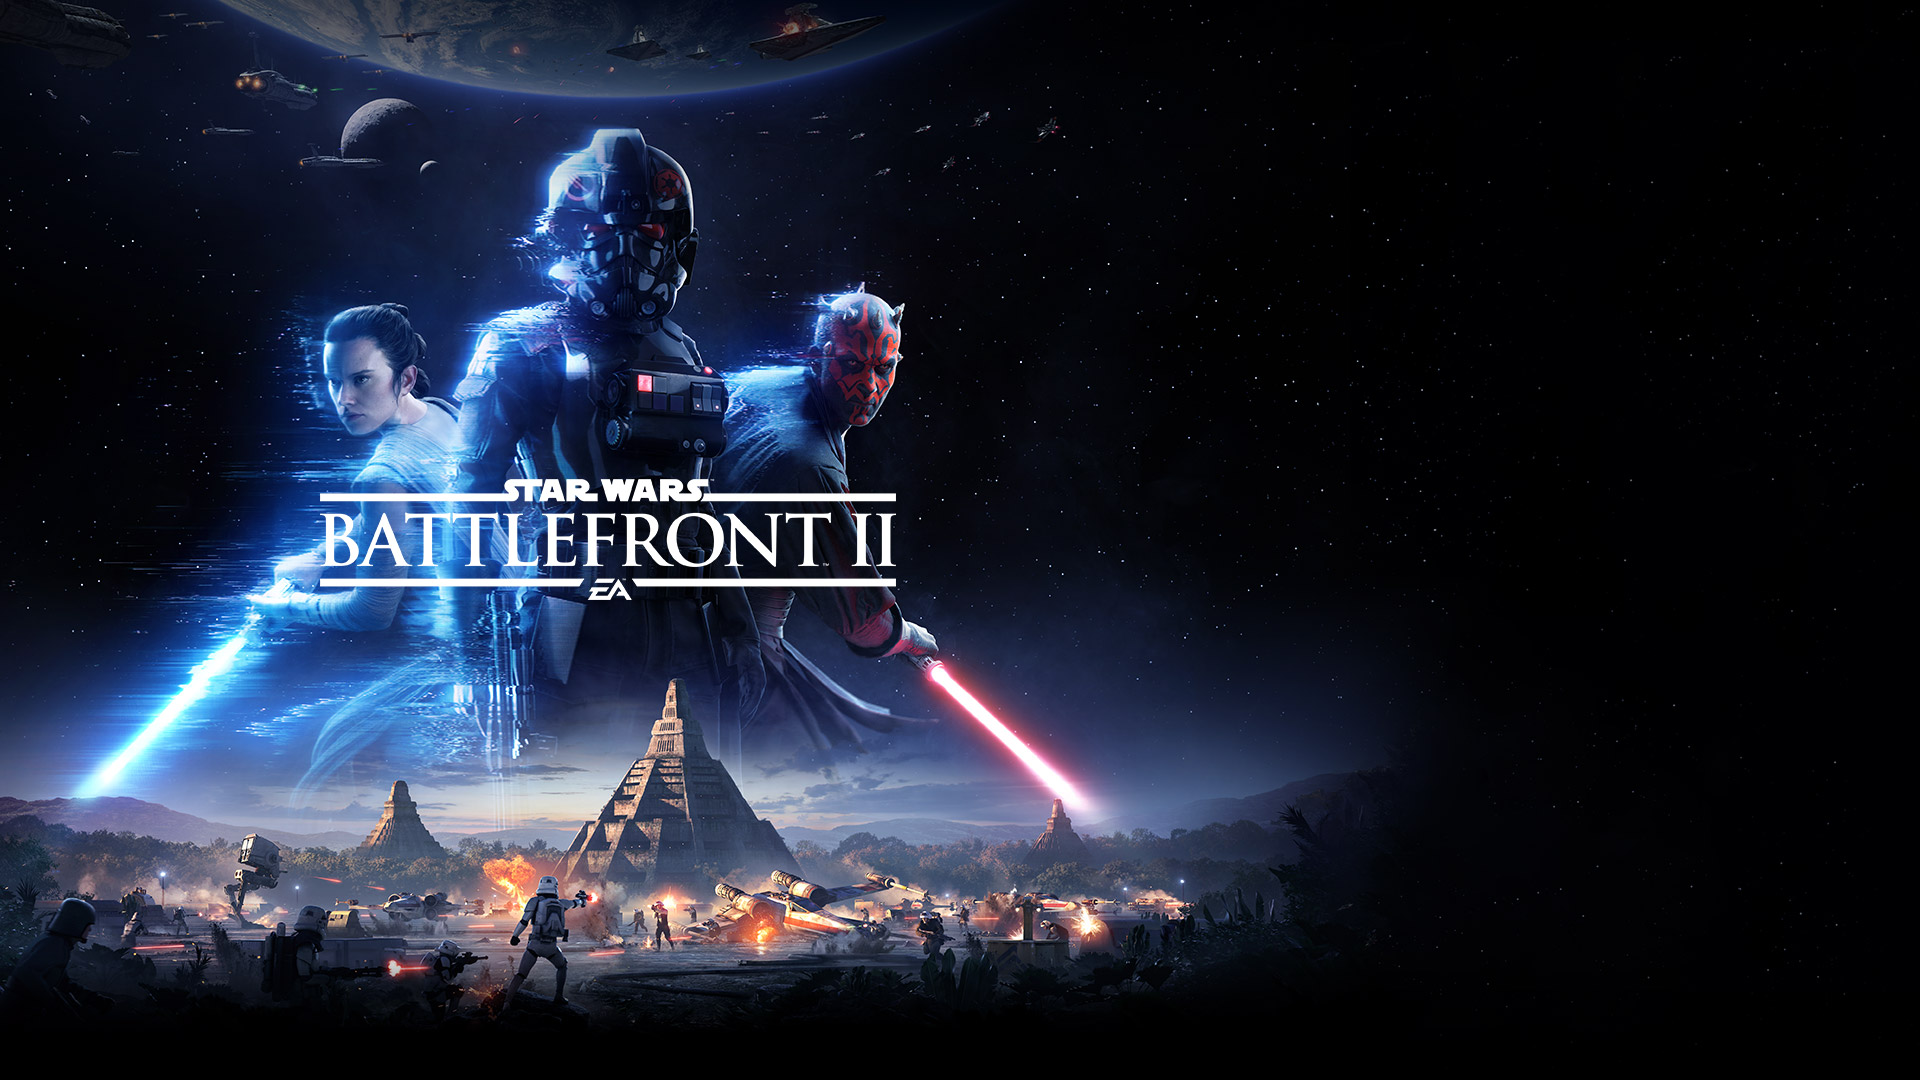 EA, Star Wars Battlefront 2, Iden Versio, Rey and Darth Maul with a starry background